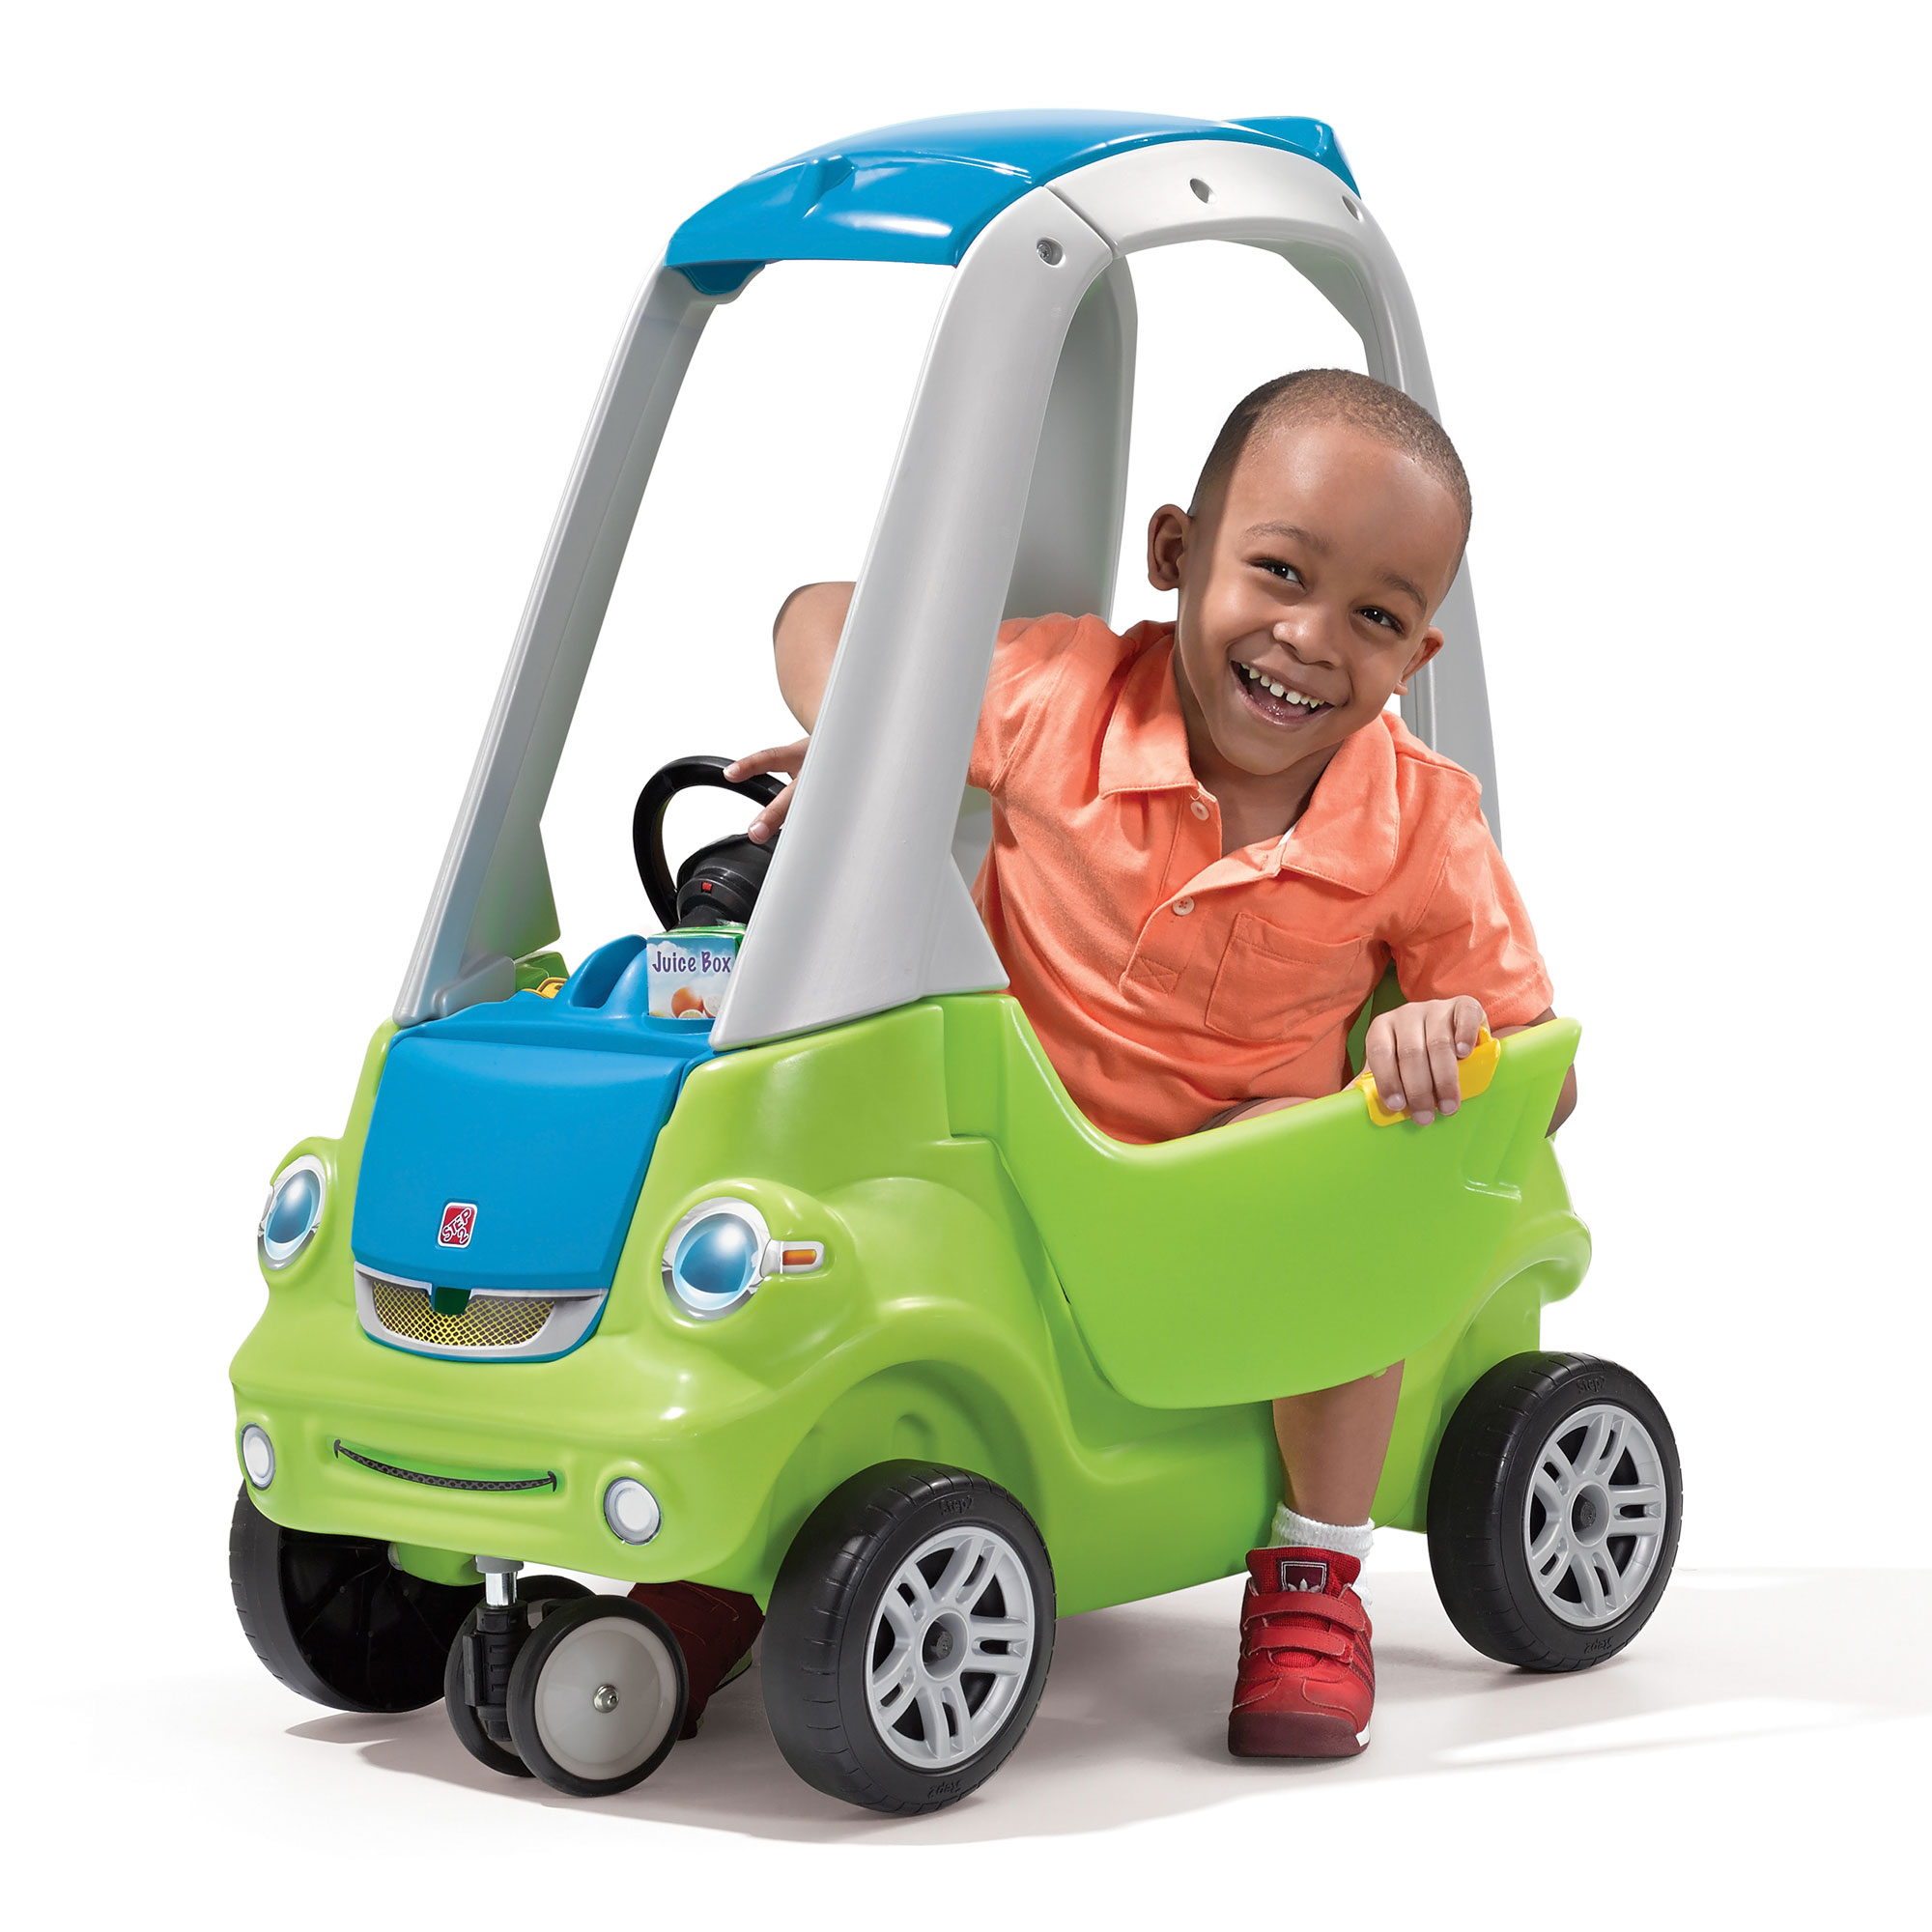 Step2 Toddler Outdoor Push Ride Toy Car for Kids Easy Turn